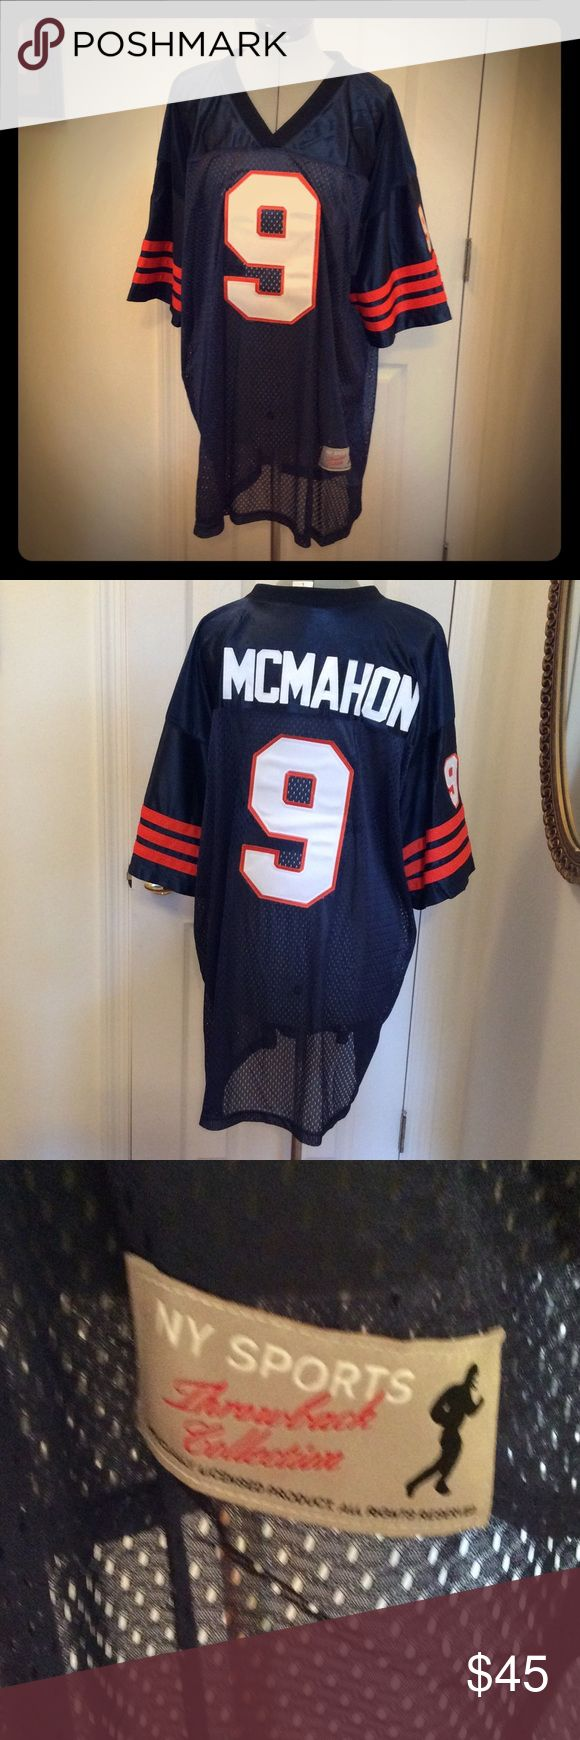 Jim McMahon jersey Throwback collection, size men's L, like new , never used. Great gift N Y Sports Shirts